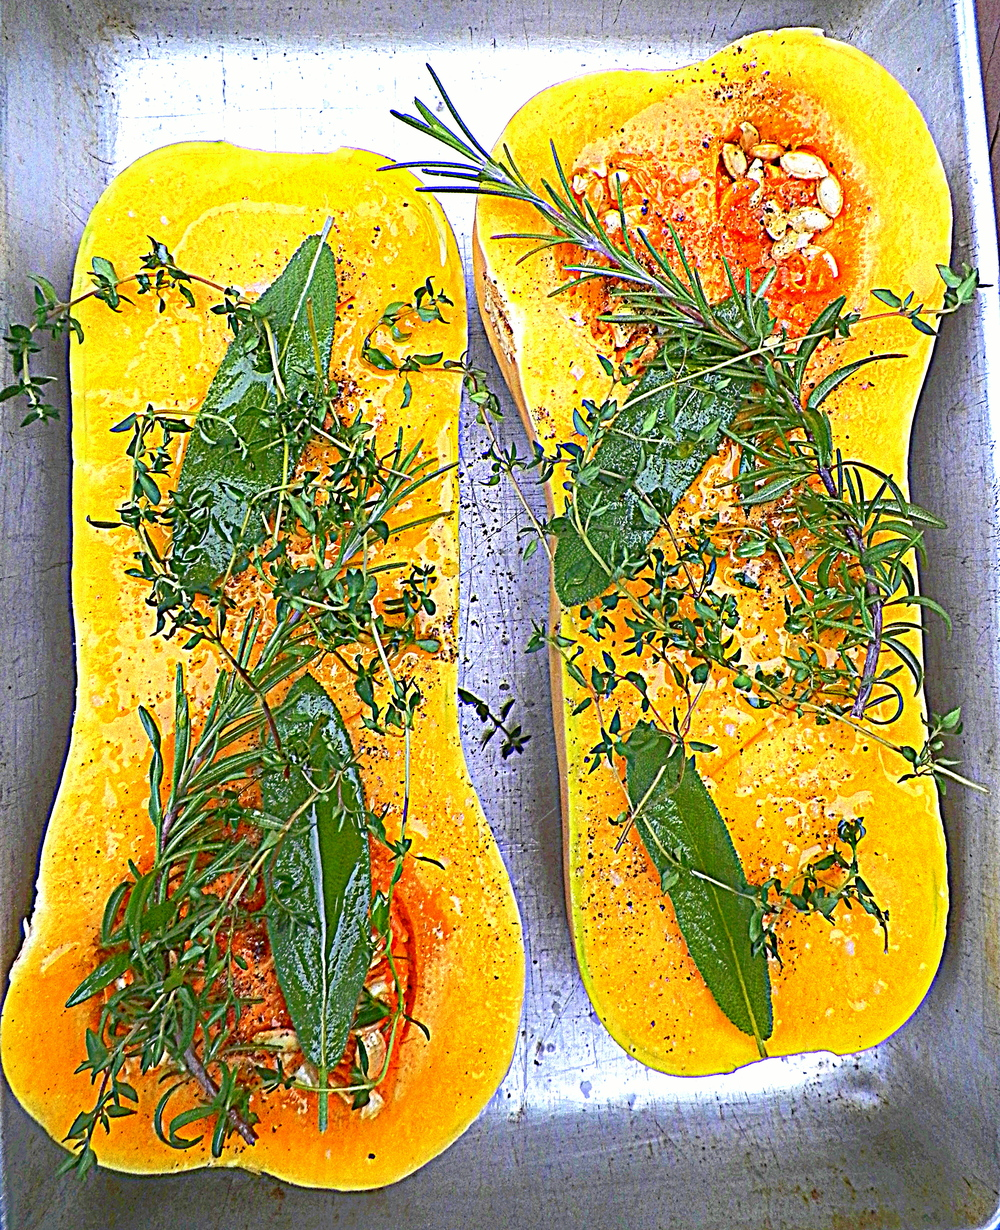 Butternut Squash herbed and oiled prior to roasting